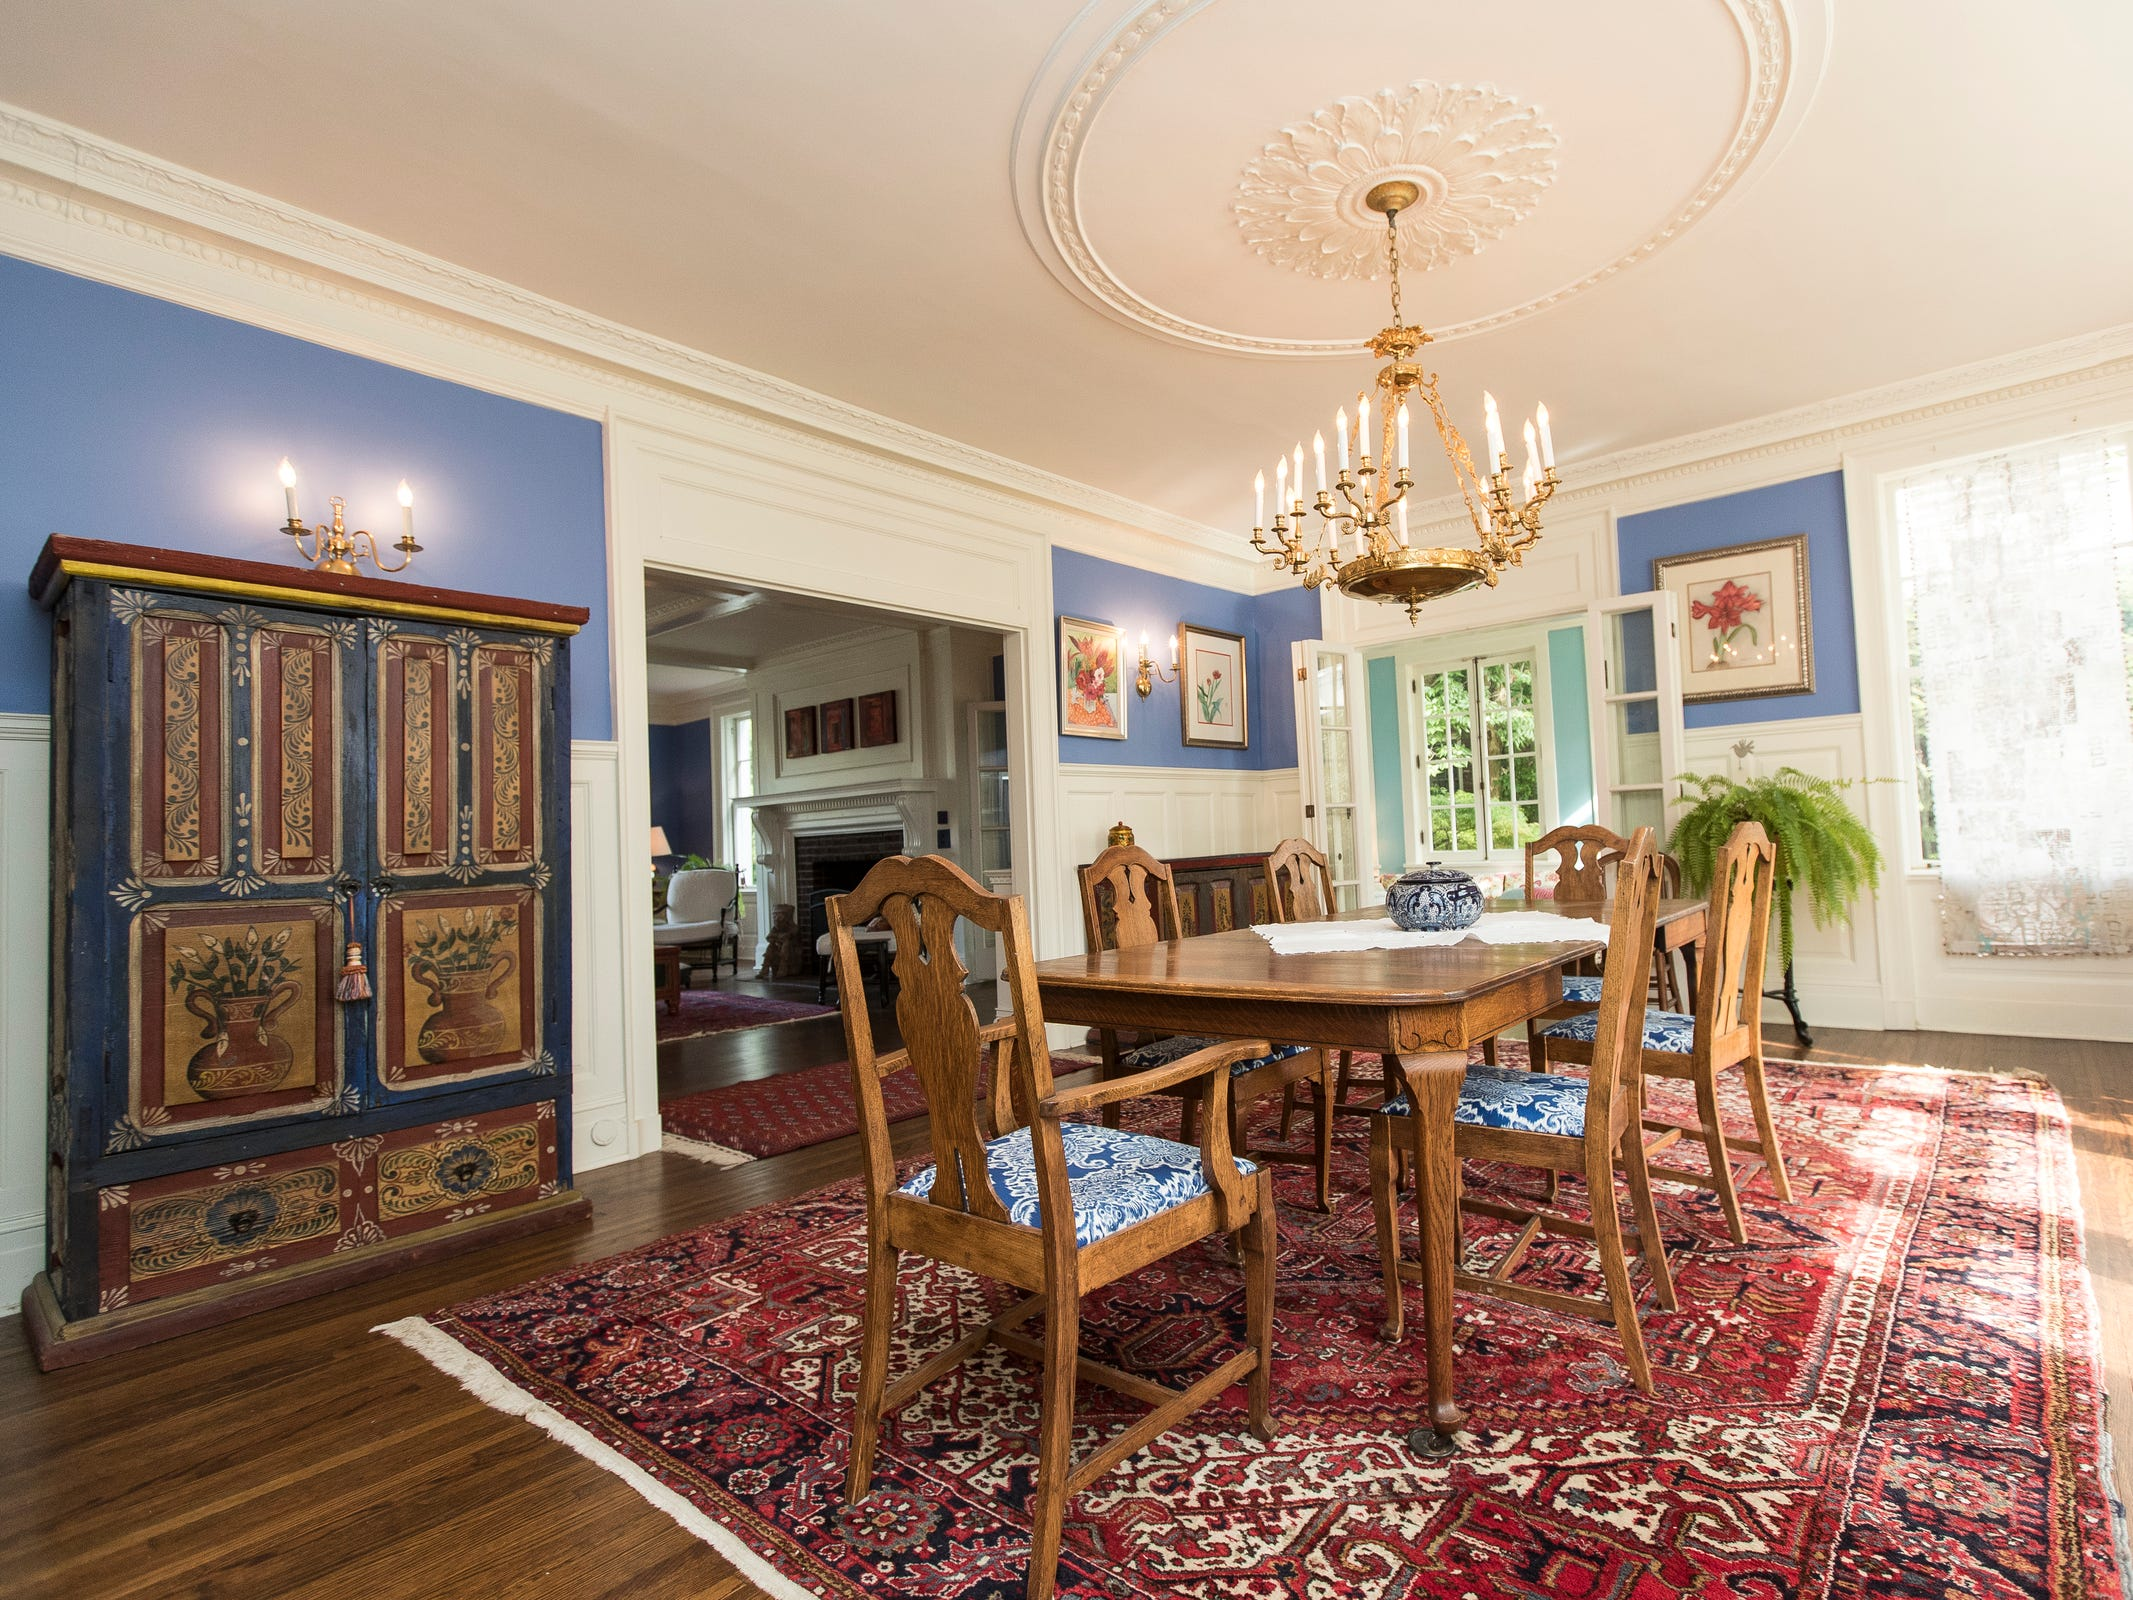 The party-sized dining room shows vivid colors with elaborate white woodwork and collections from around the world.